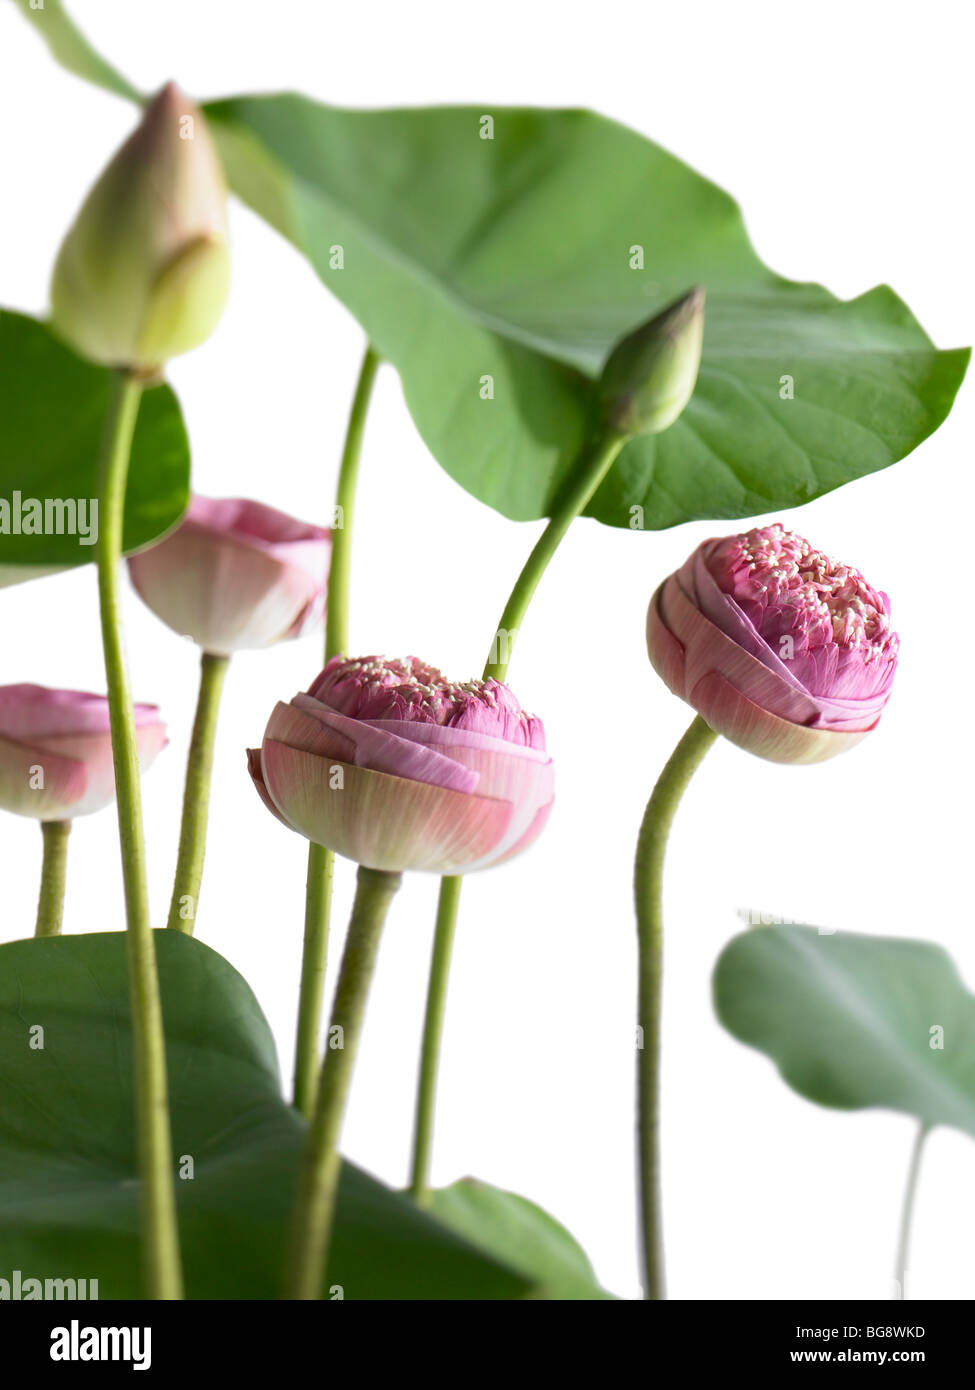 Pink lotus flower buds and leaves stock photo 27240625 alamy pink lotus flower buds and leaves izmirmasajfo